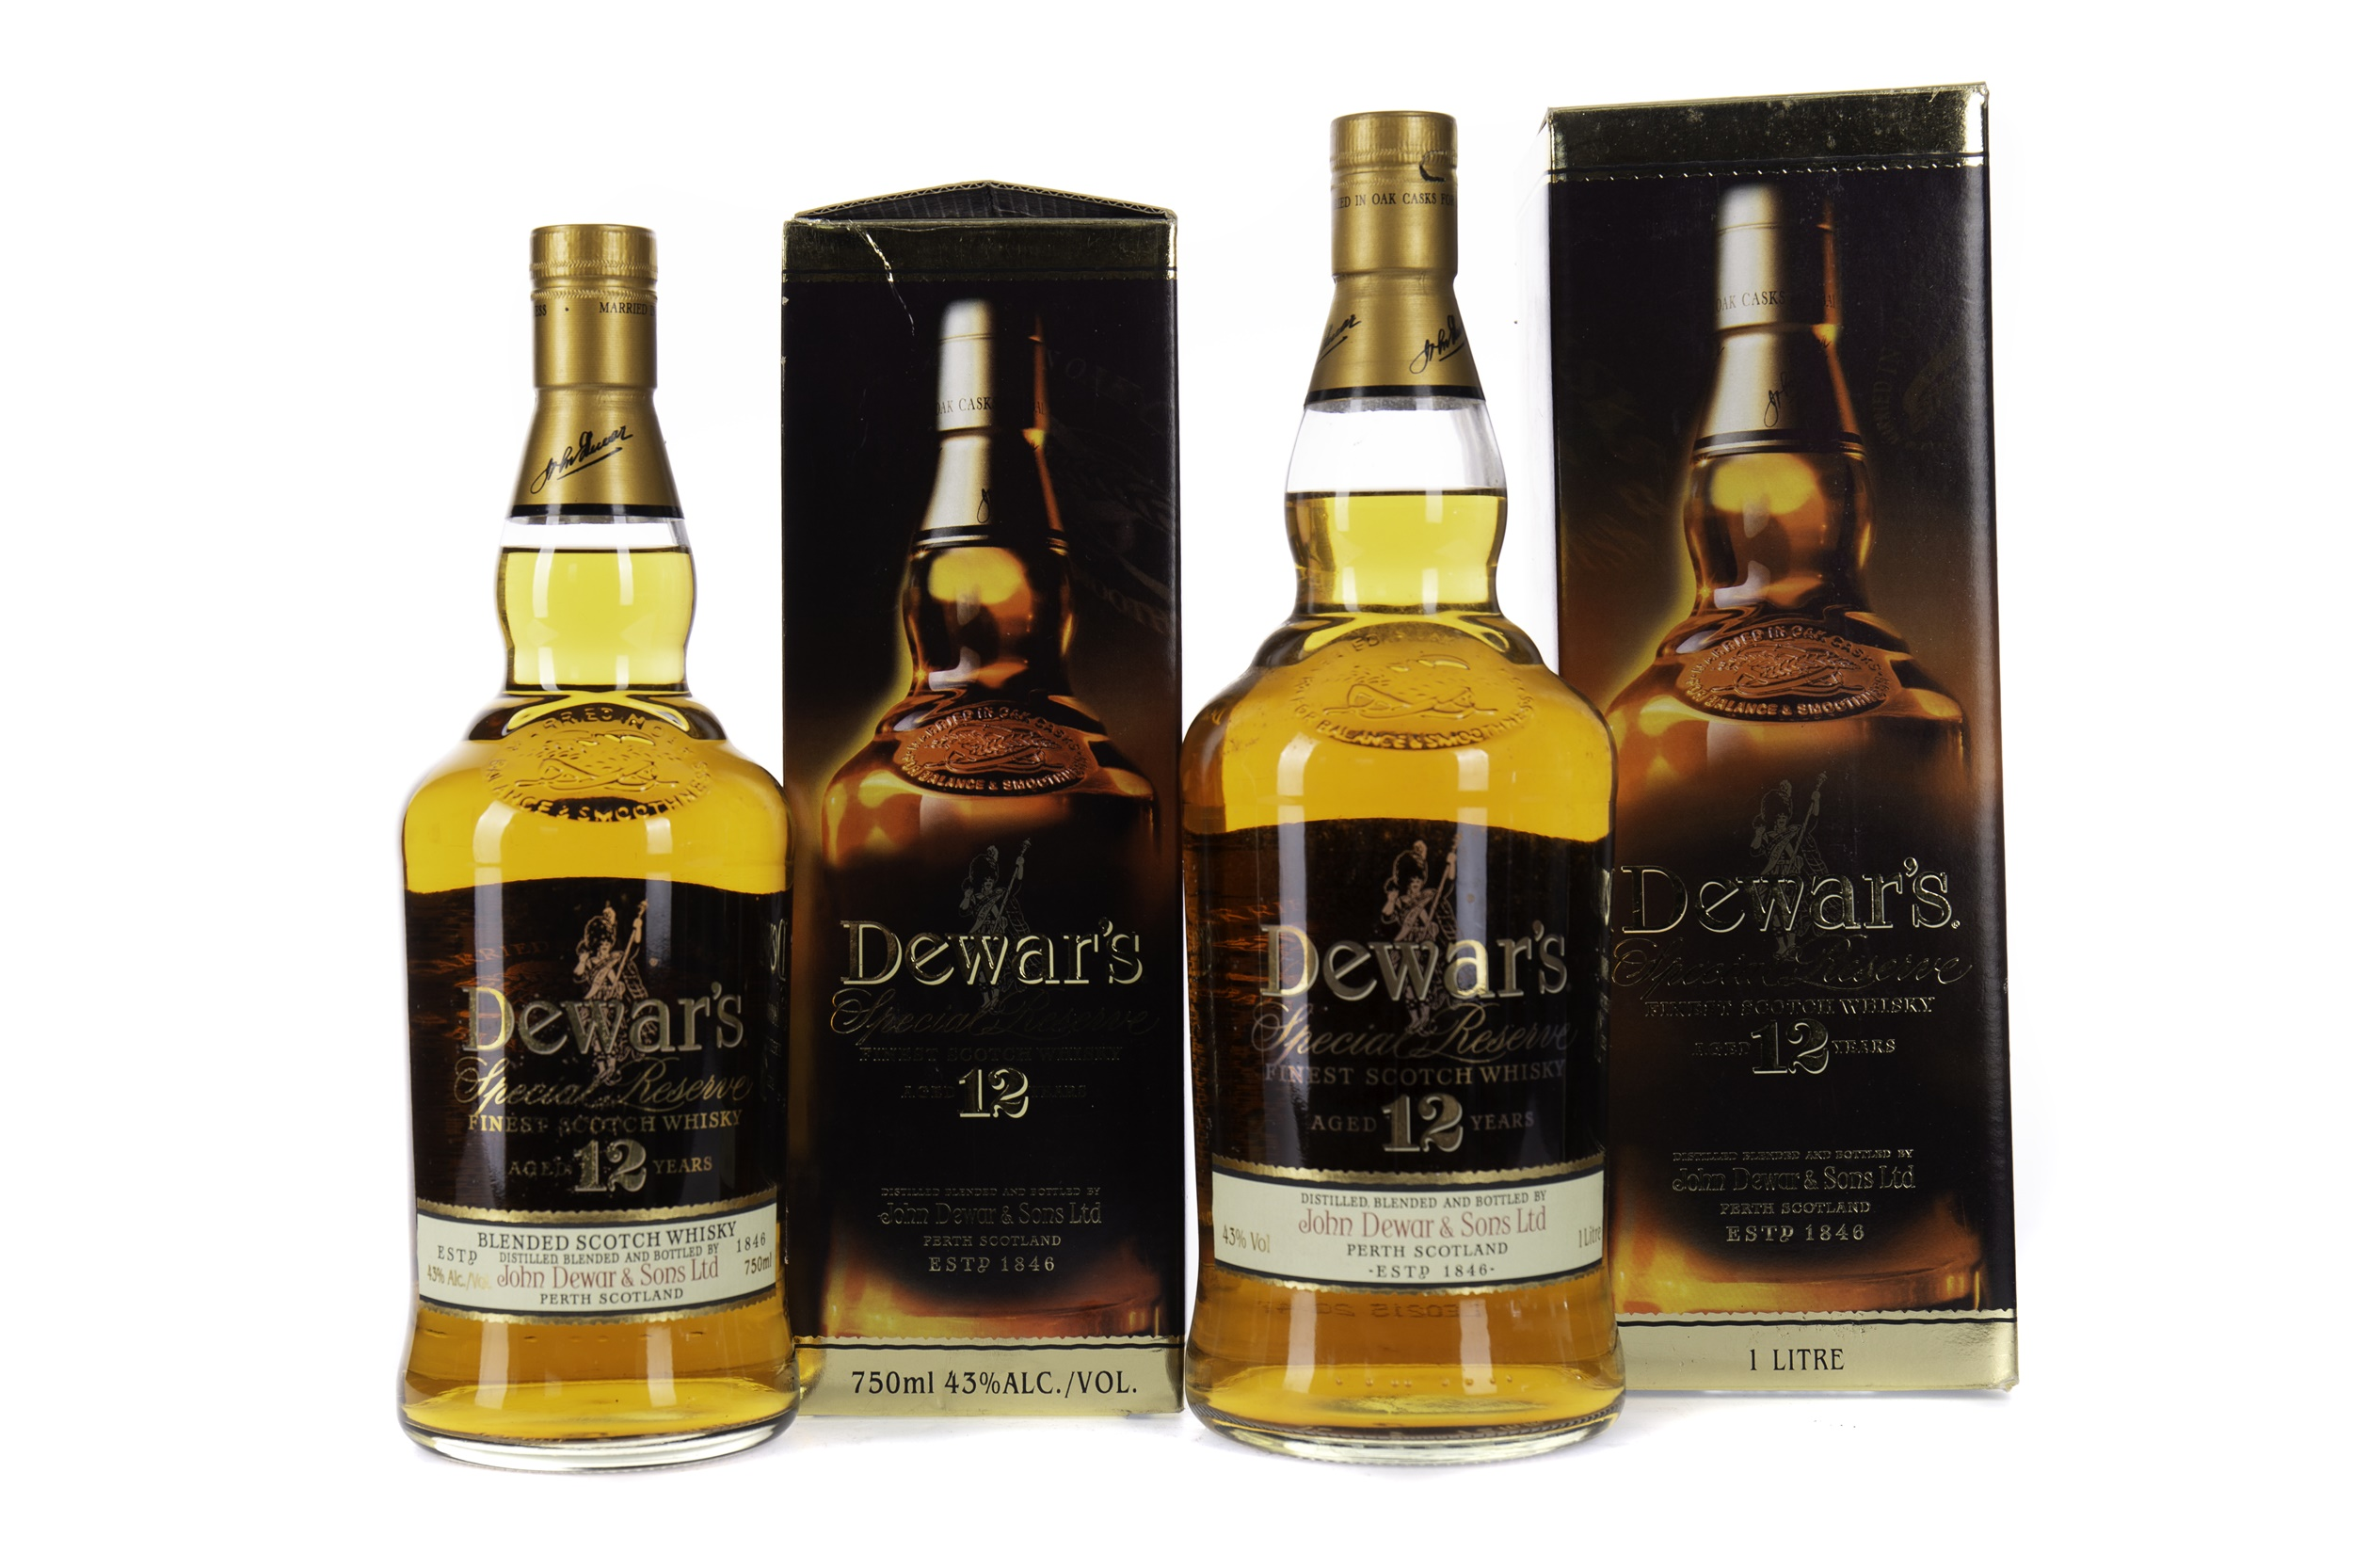 TWO BOTTLES OF DEWAR'S AGED 12 YEARS